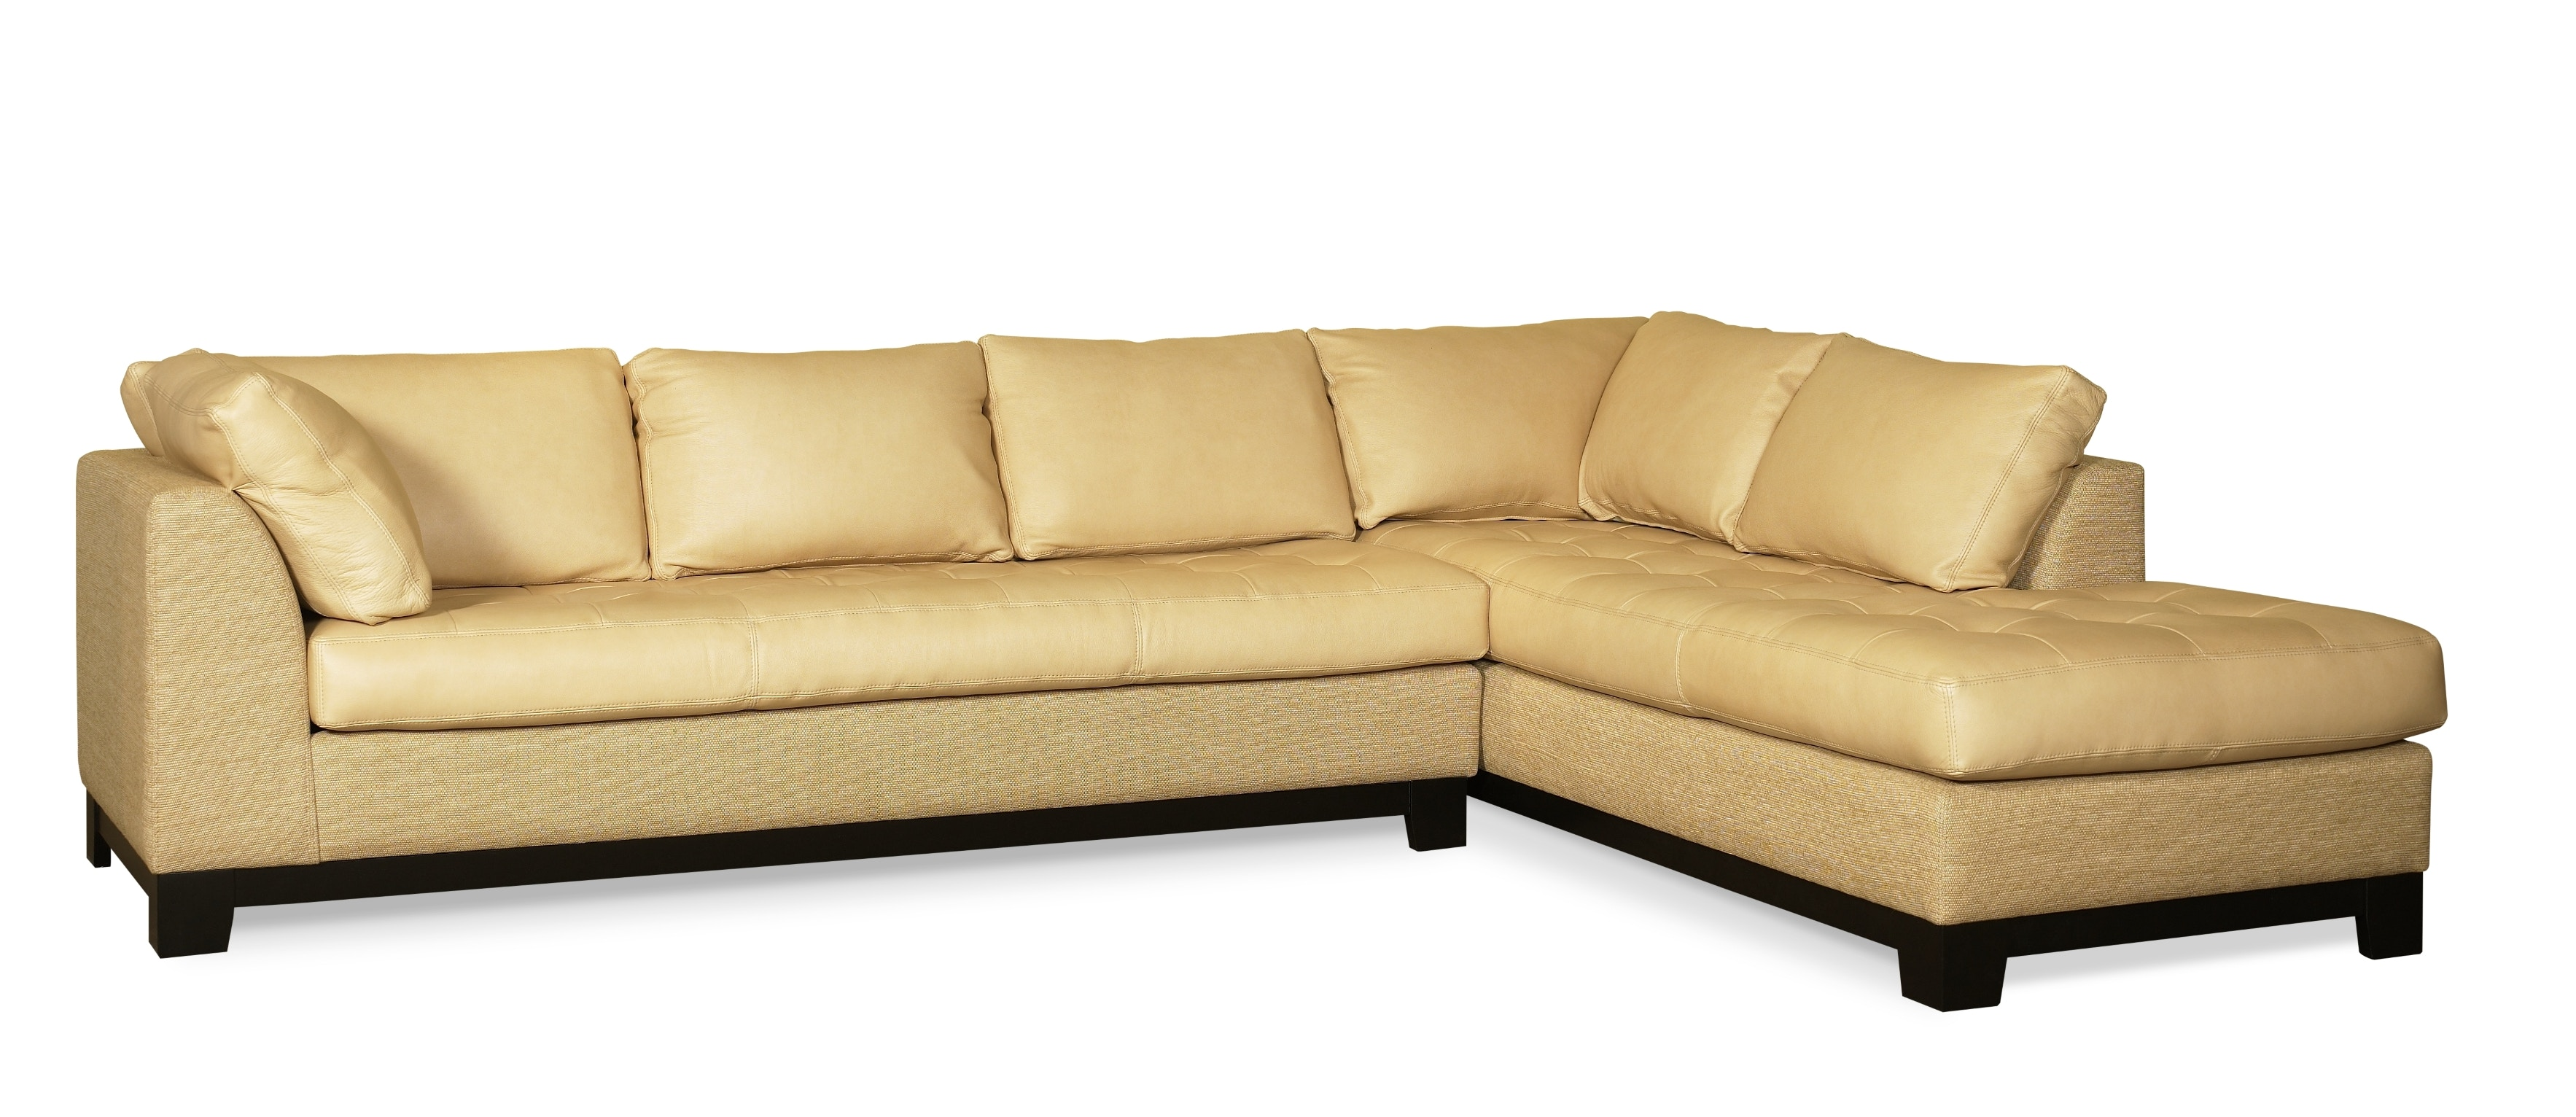 Elite Leather Sofa Home And Textiles